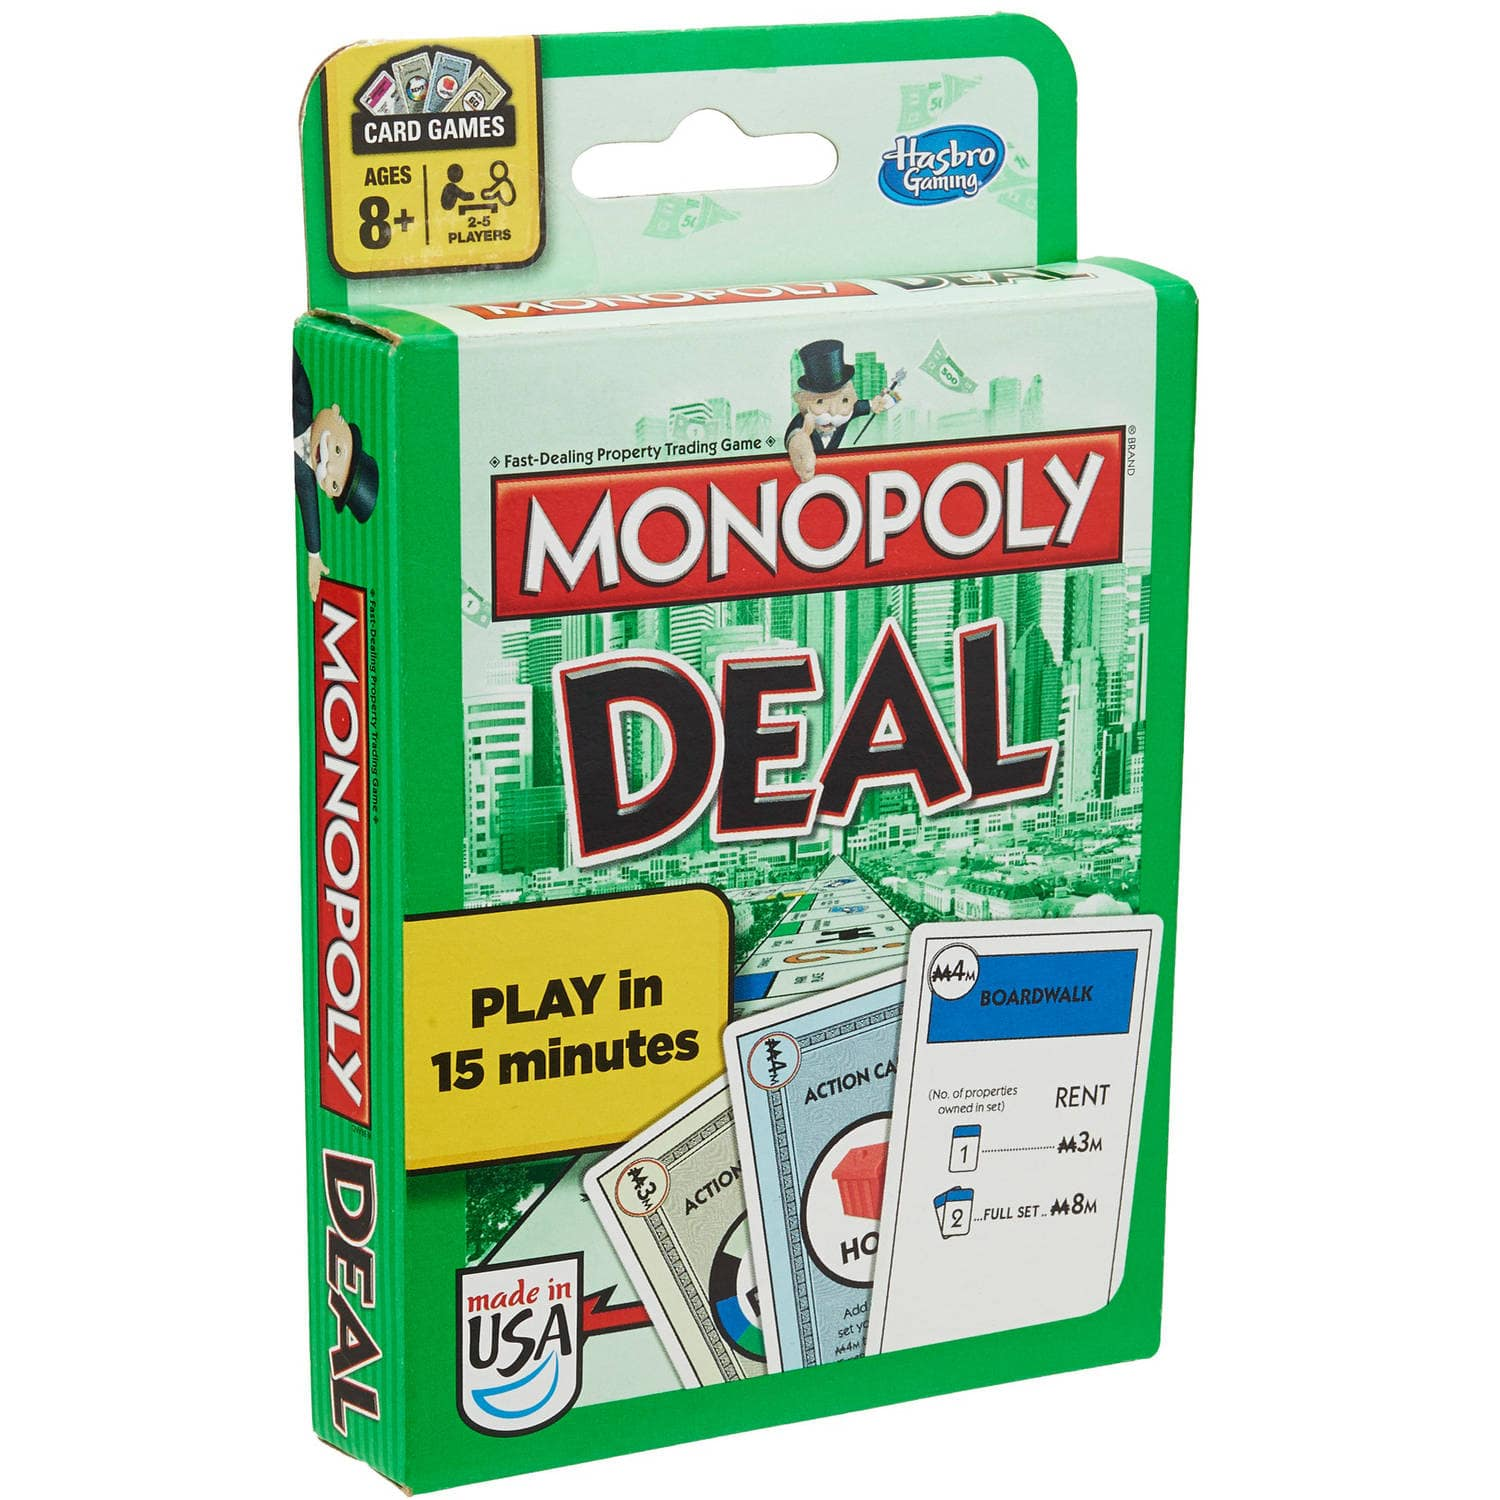 Monopoly Deal Card Game $3.99 @Amazon